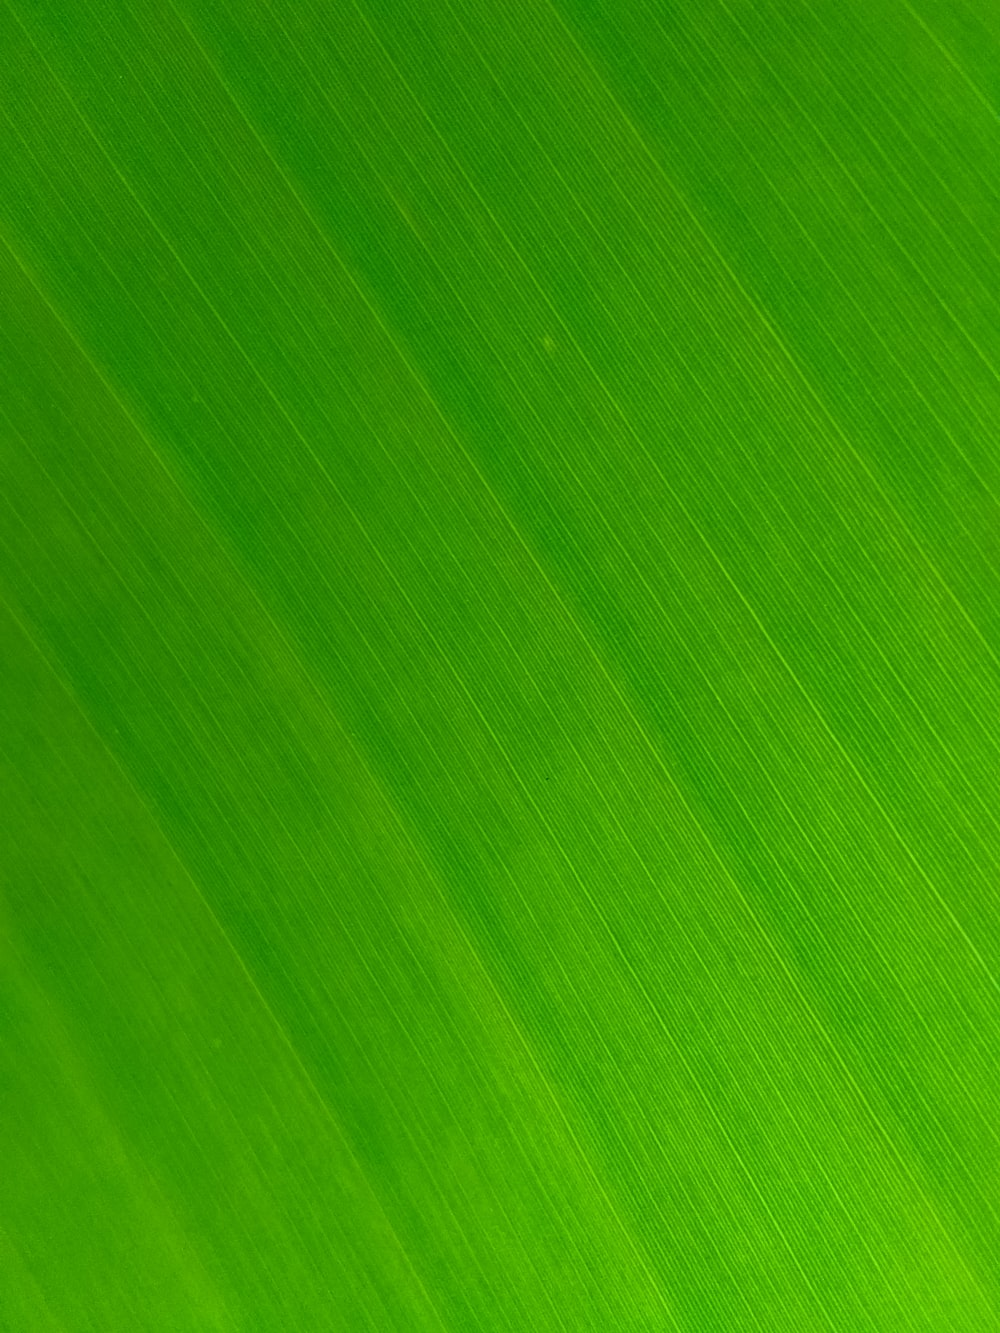 green and white striped textile